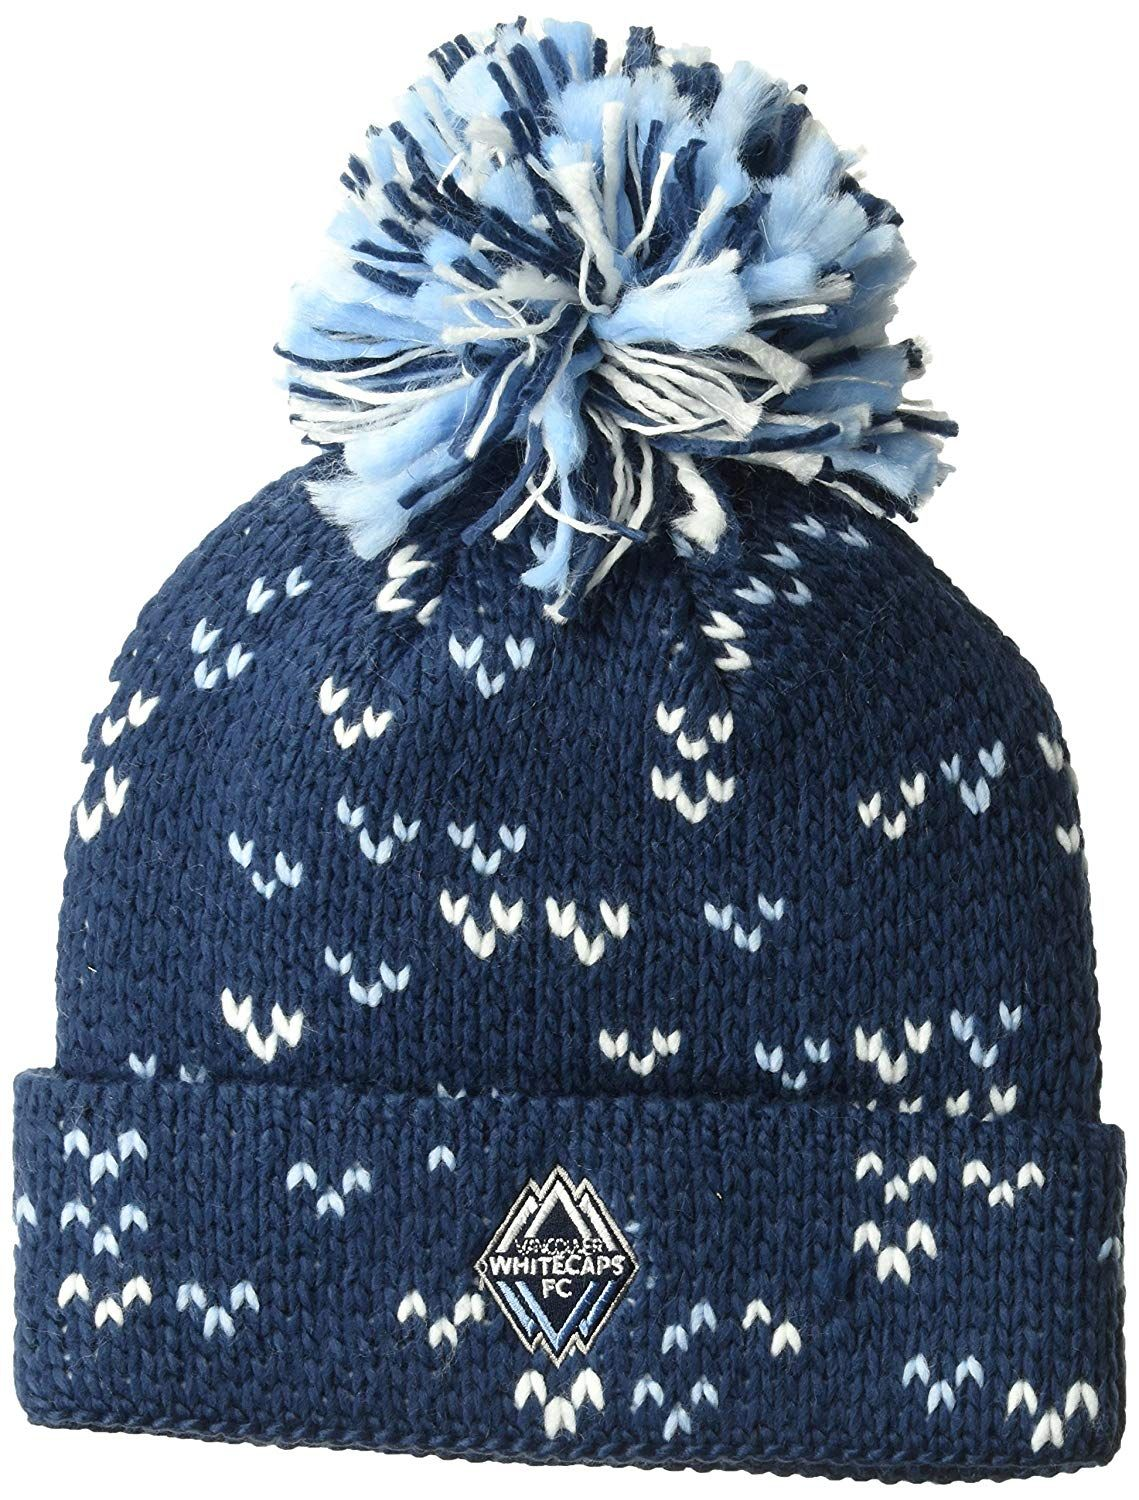 967c0631614 adidas MLS Vancouver Whitecaps Women s Fan Wear Cuffed Pom Knit Beanie